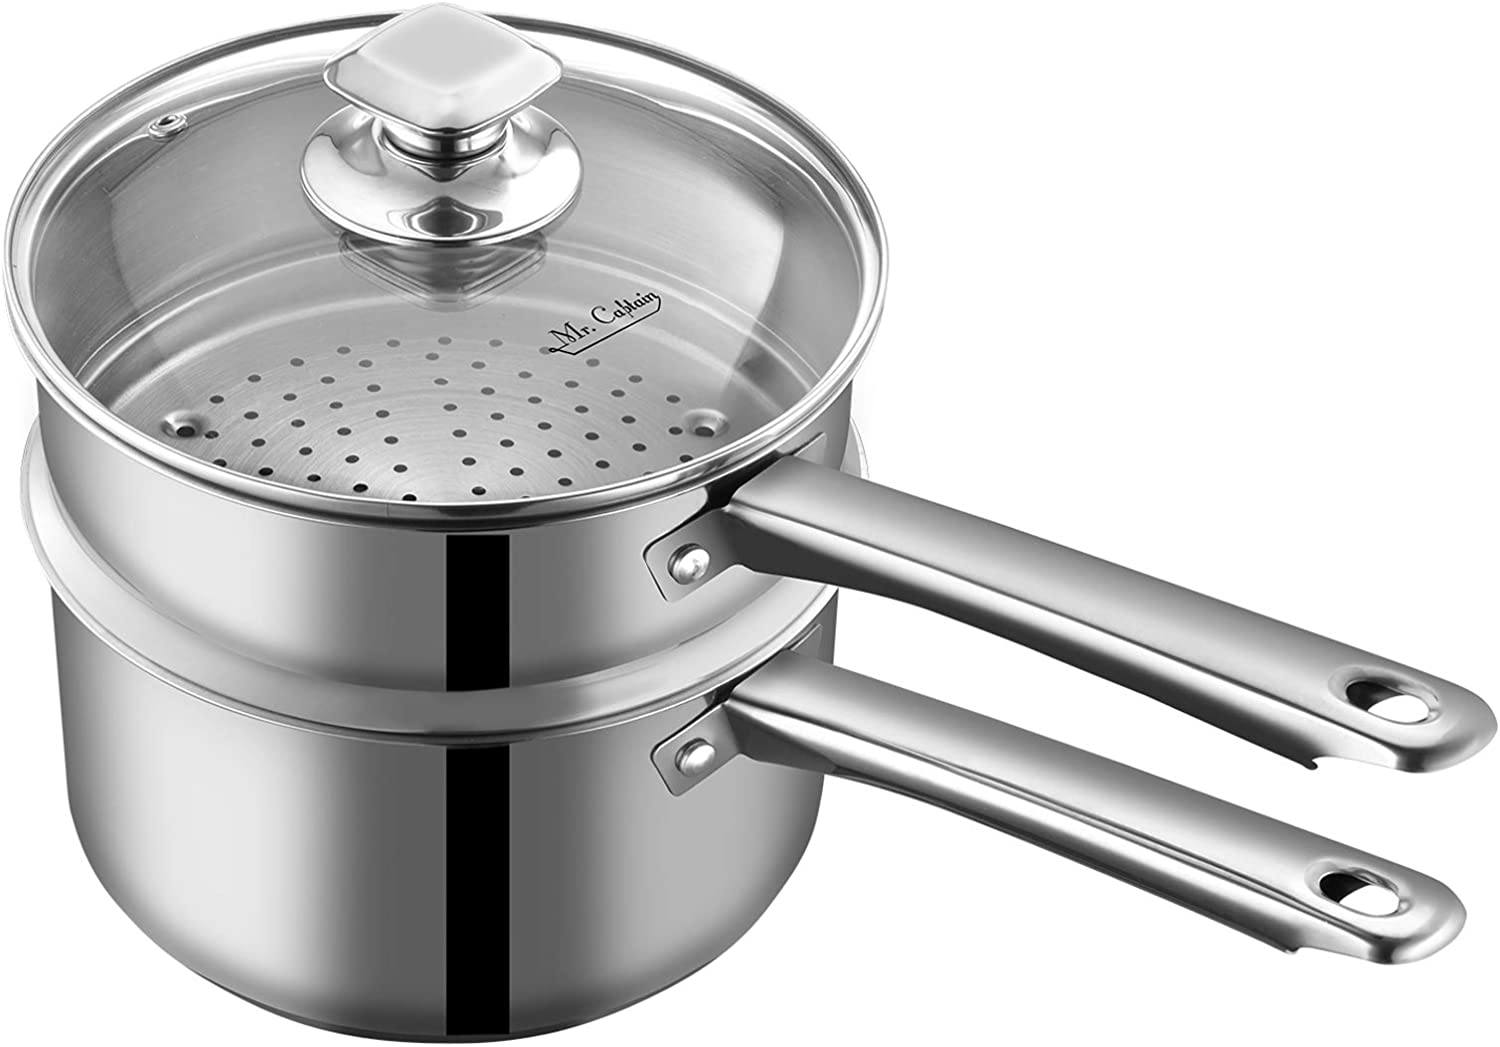 Mr Captain Steamer & Nonstick Saucepan(3 Quart)With Lid, 18/10 Stainless Steel Sauce Pan, Perfect for All Stovetops Small Pot Induction Compatible Dishwasher/Oven Safe